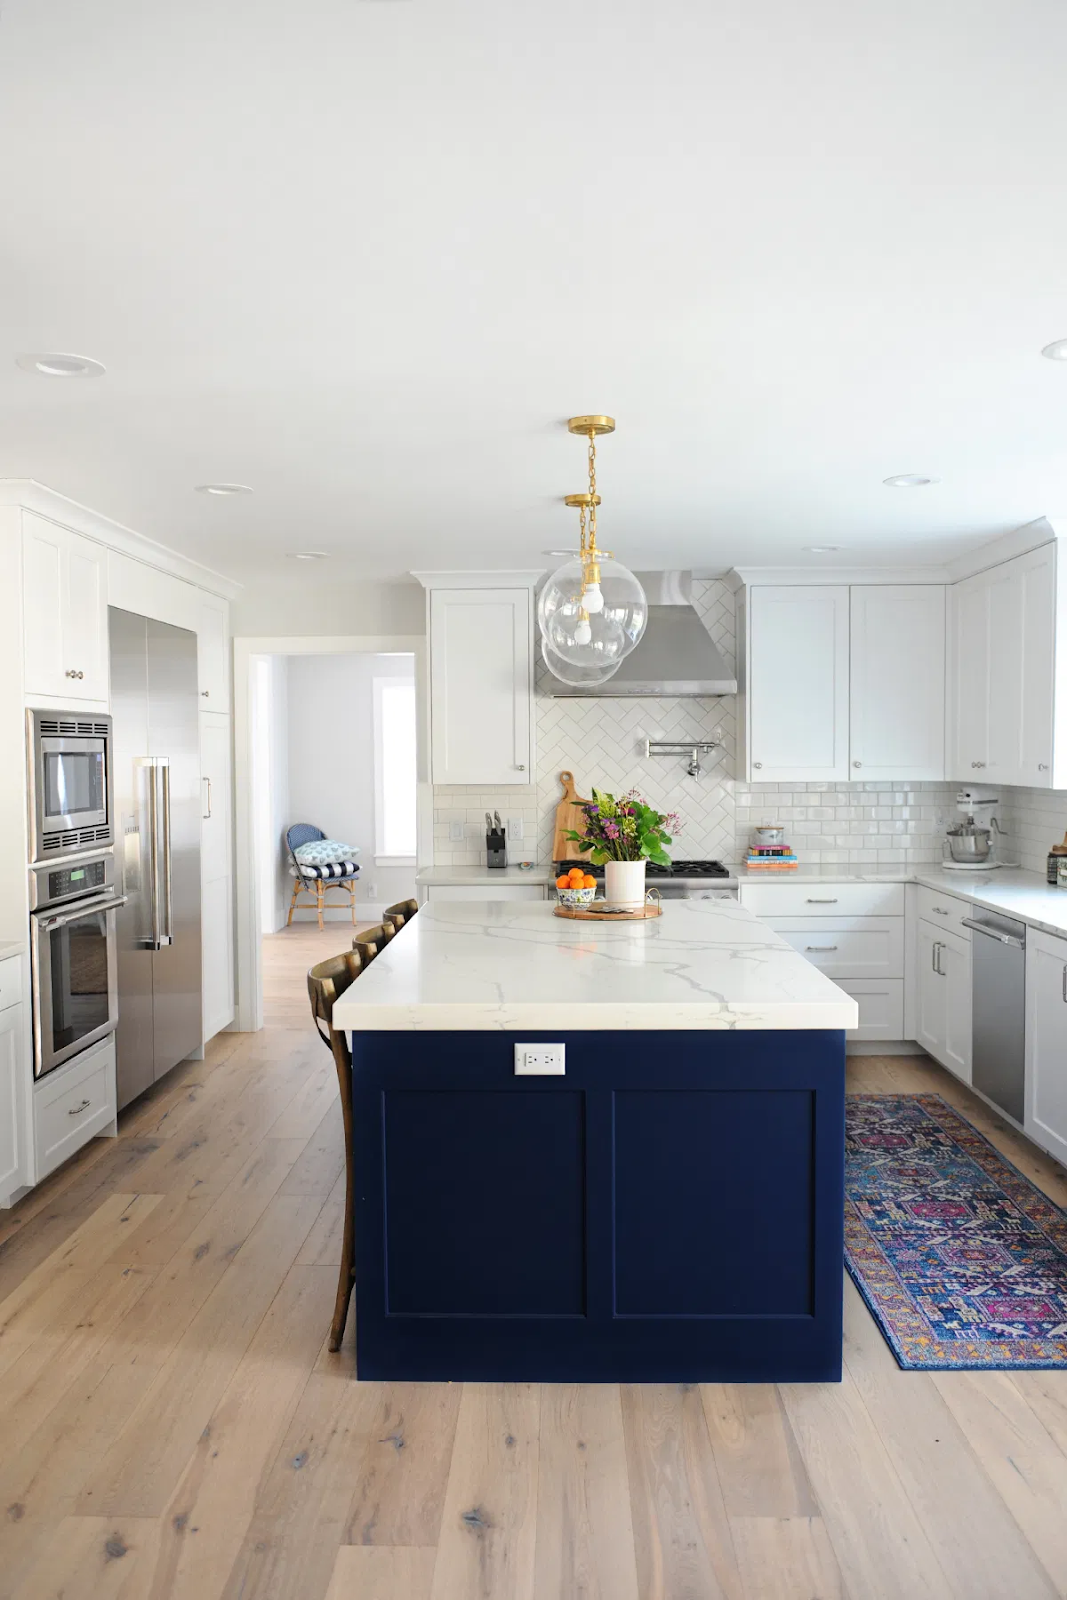 contemporary blue and white kitchen design with white shaker cabinets and a navy blue center island. blue and white cabinets are one of the best cabinet colors for 2020